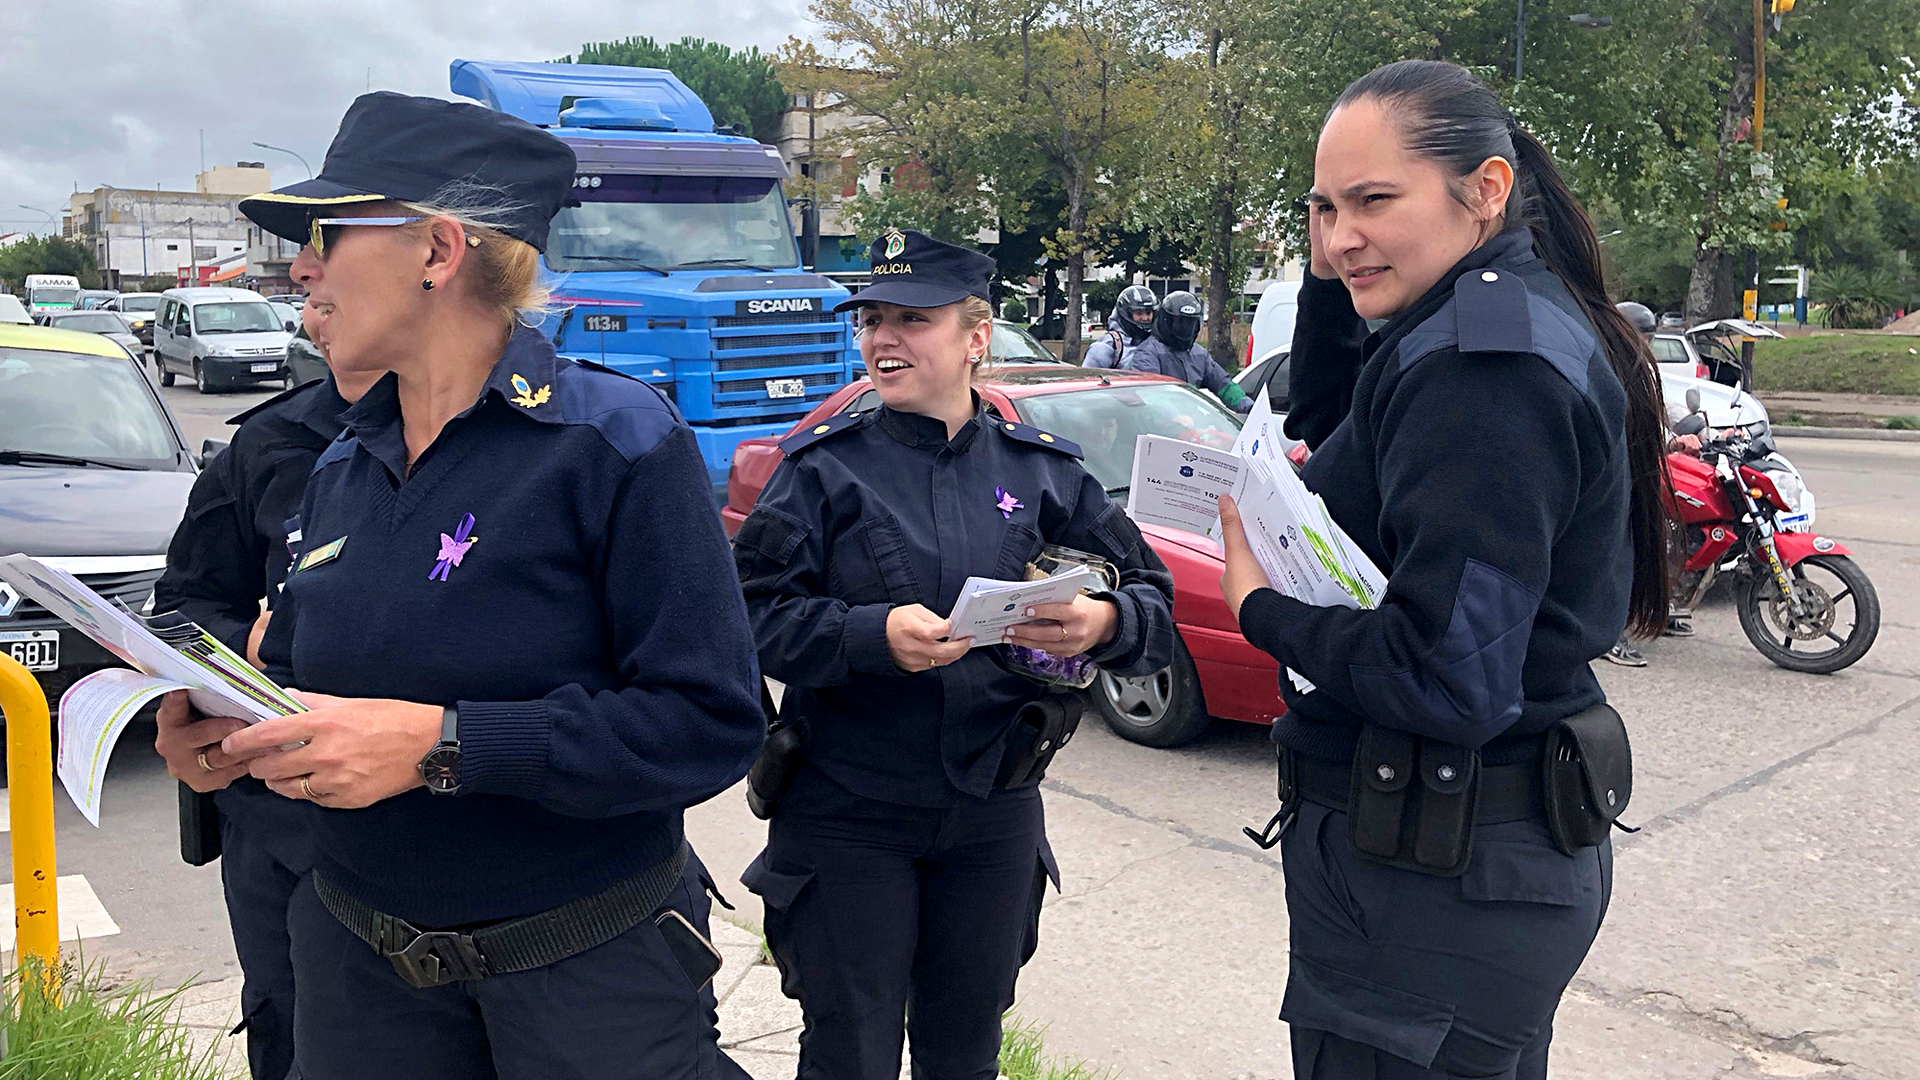 VIDEO: Women's Police Stations Help Prevent Violence Against Women, So Why Are They Not Everywhere?